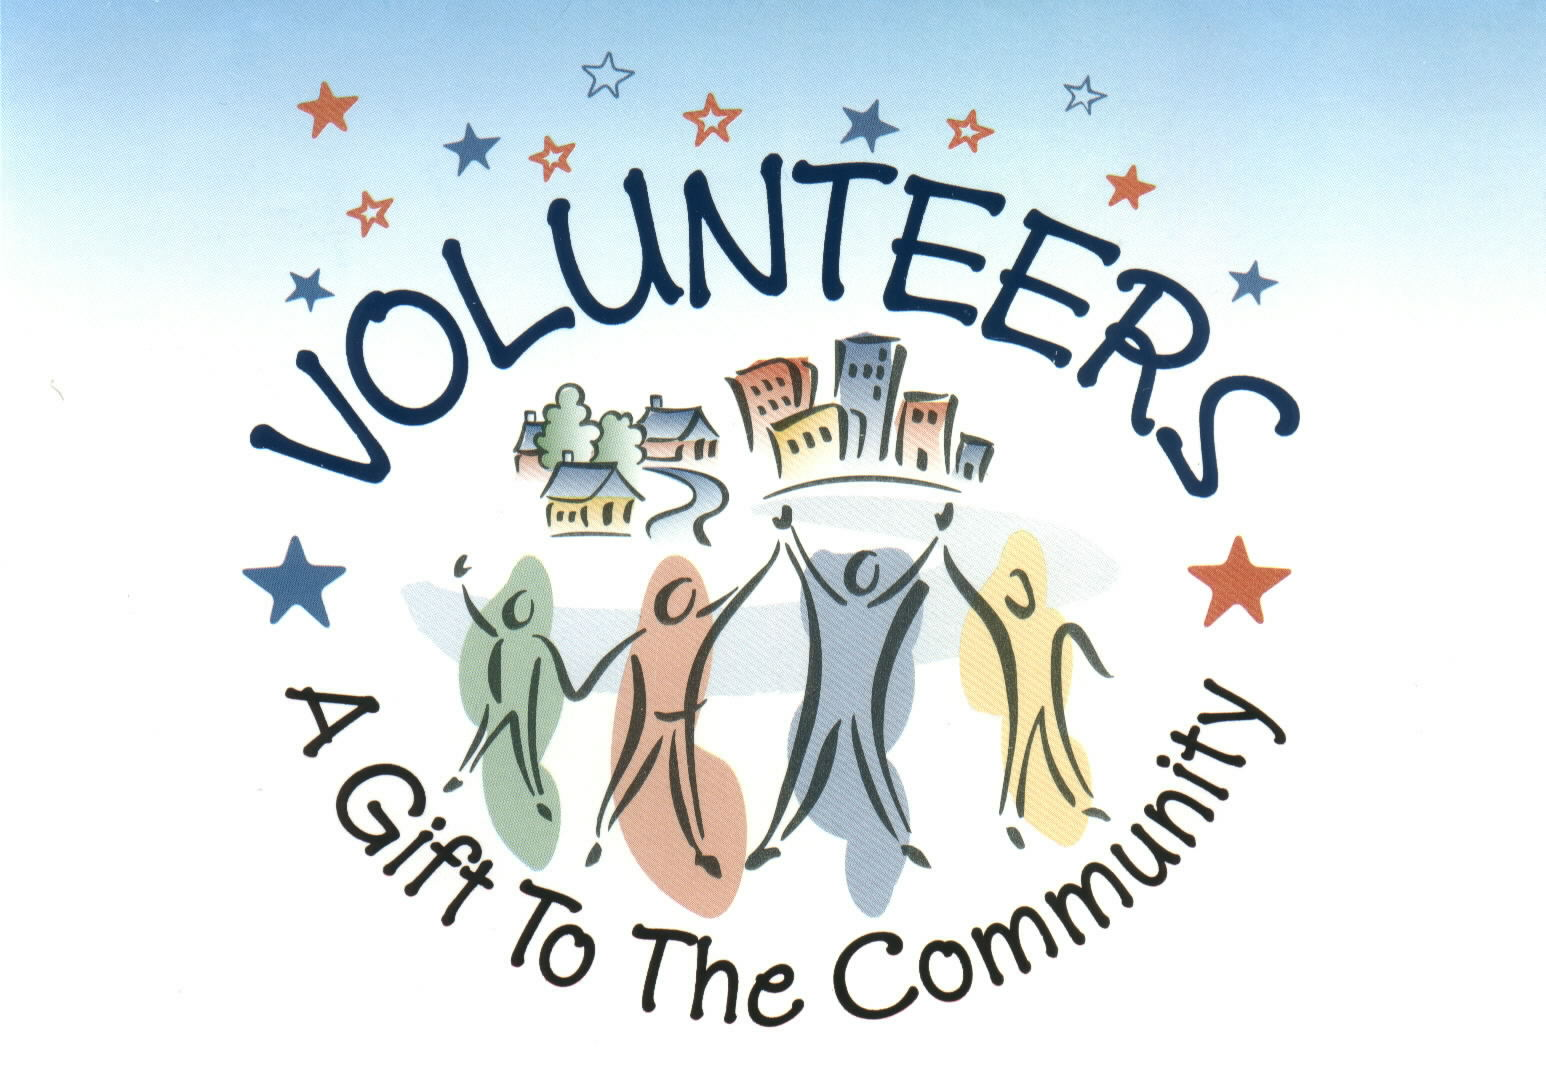 Volunteers-A Gift to the Community